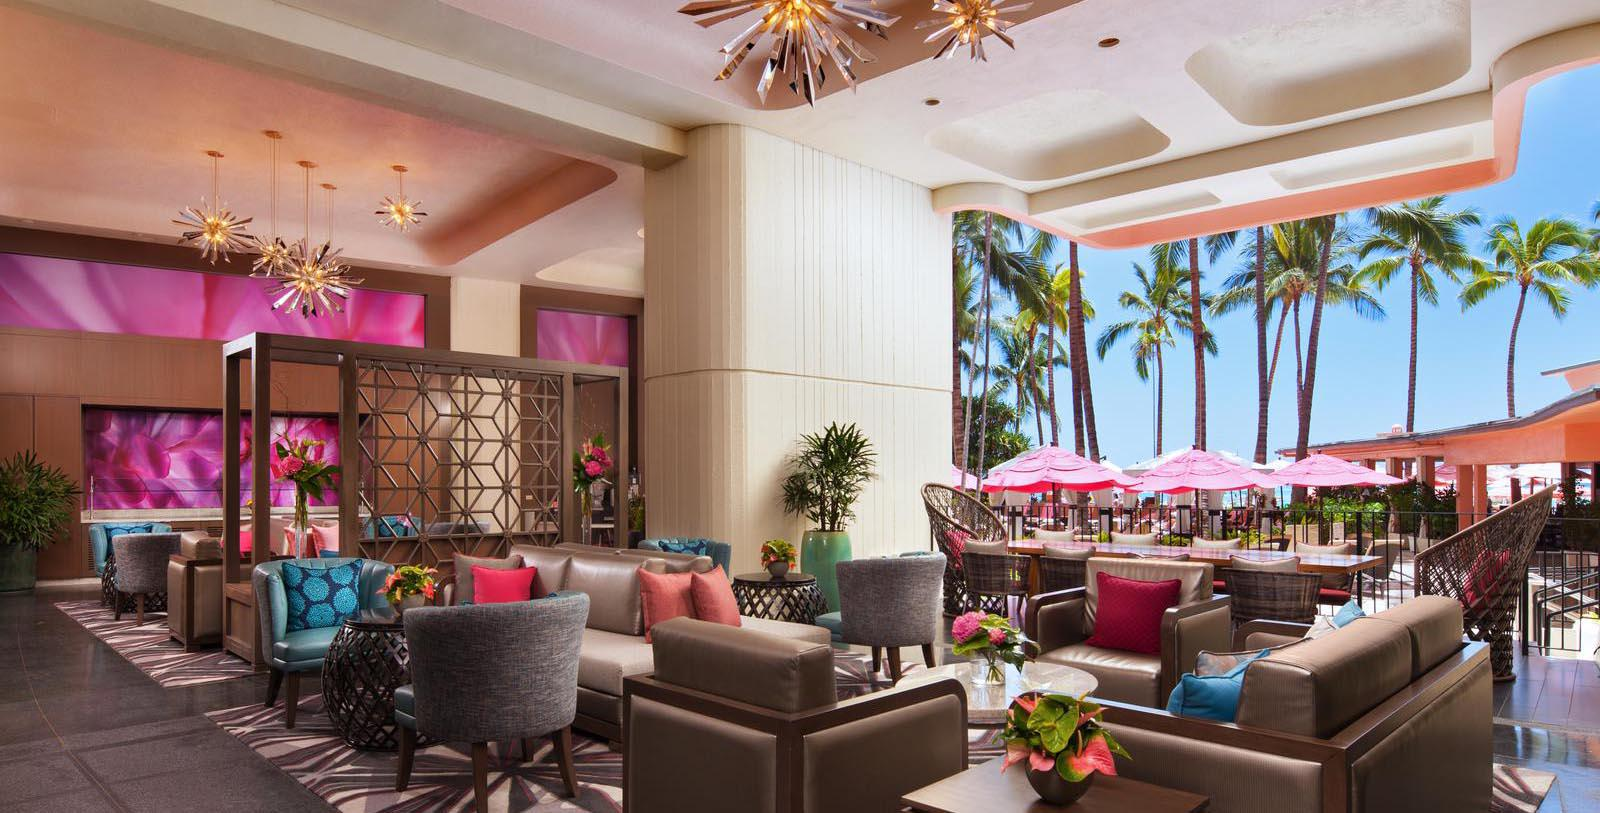 Image of Hotel Lounge at The Royal Hawaiian, A Luxury Collection Resort, 1927, Member of Historic Hotels of America, in Honolulu, Hawaii, Explore